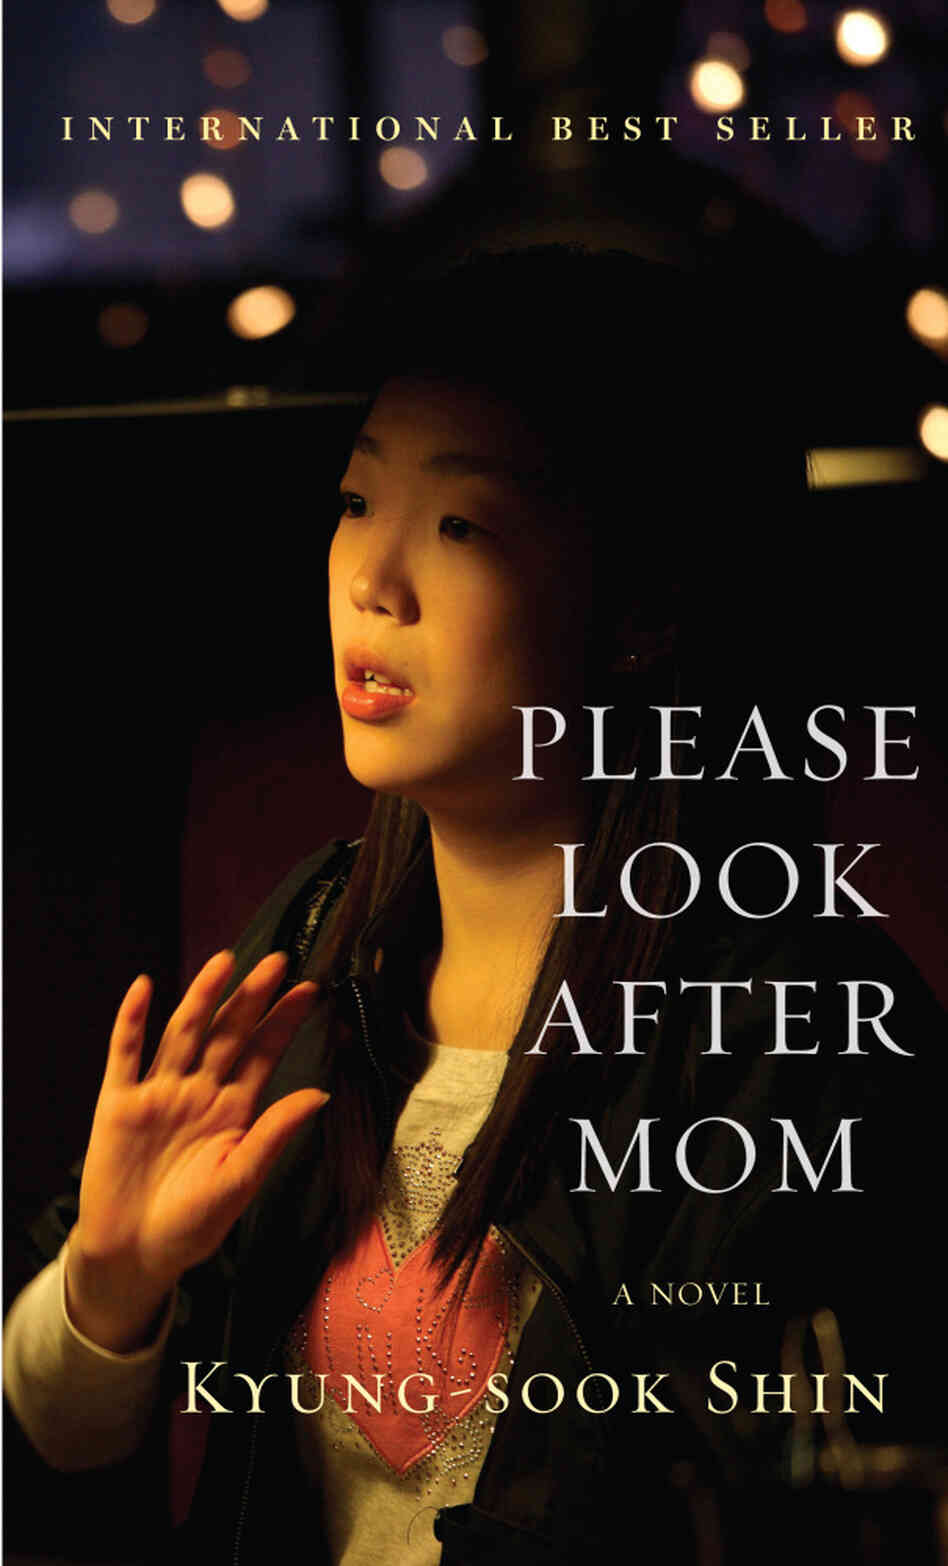 Please Look After Mom by Kyung-Sook Shin